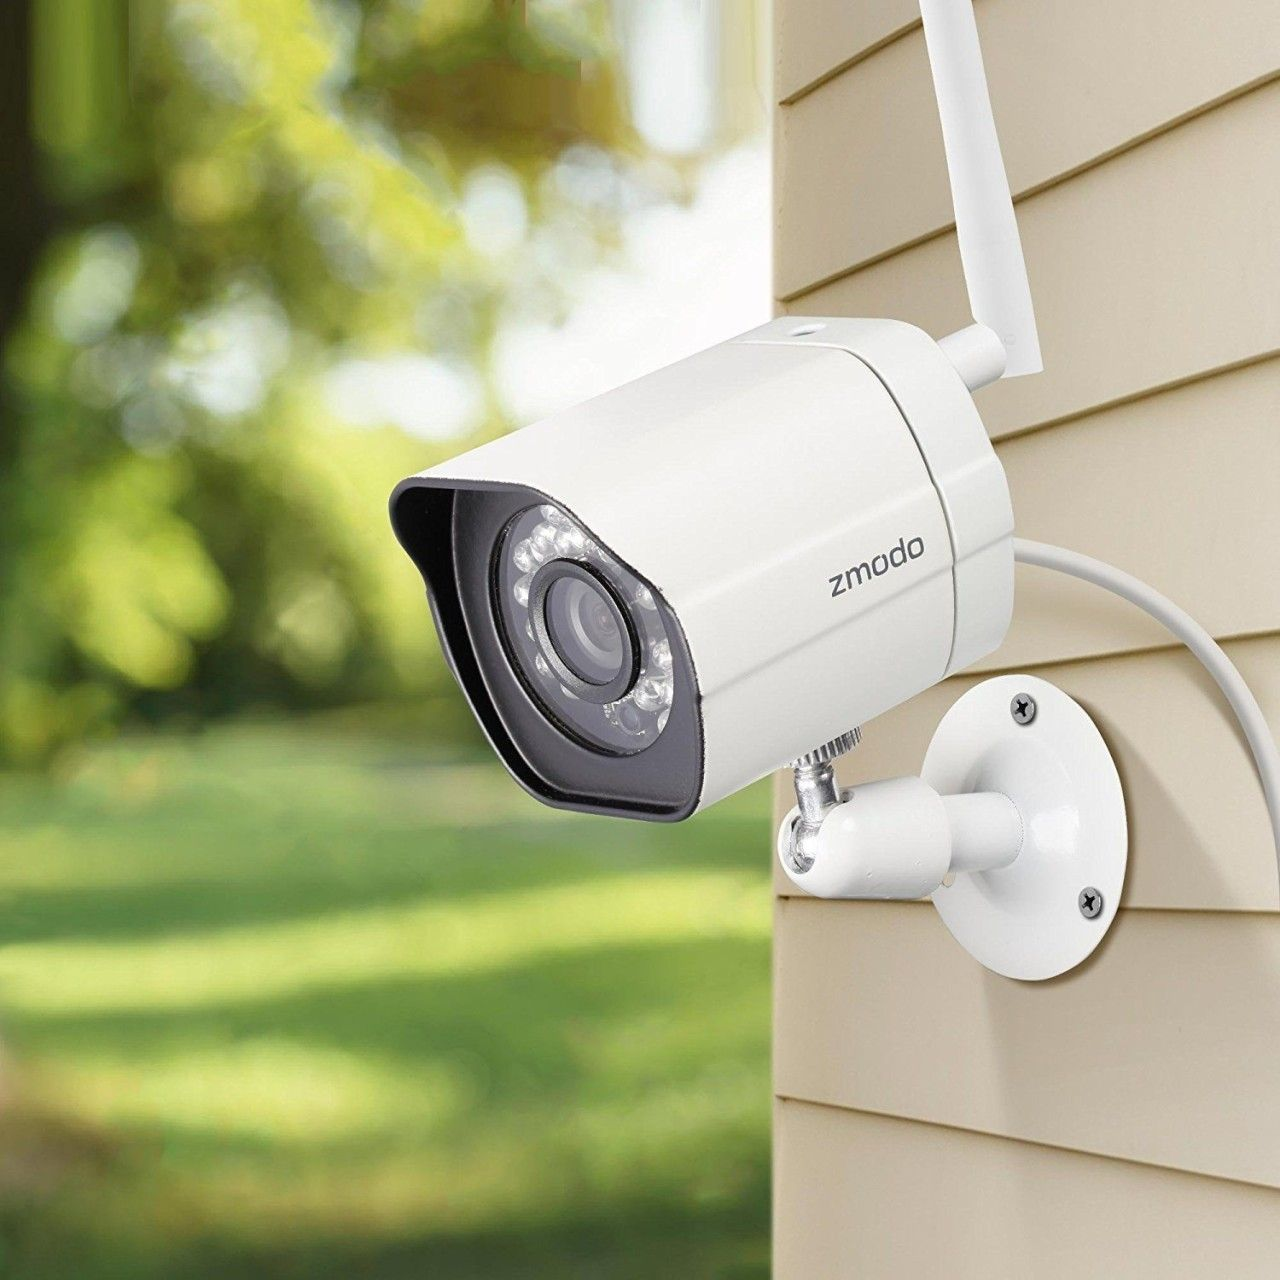 Smart Home Security The Way To Savings The Money Pit Home Security Tips Wireless Security Camera System Home Security